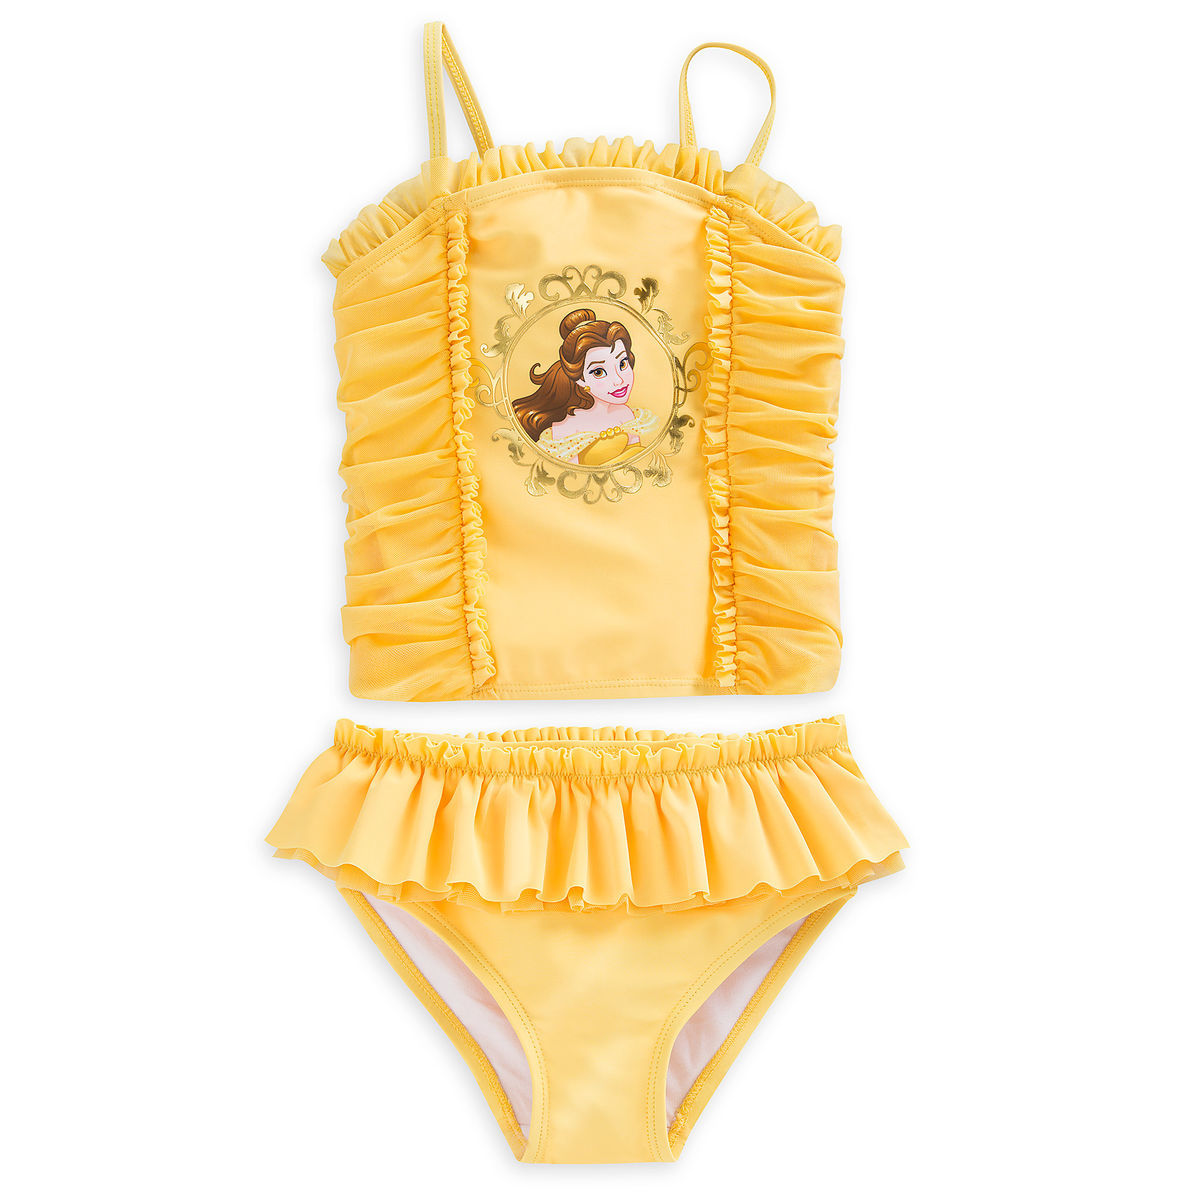 7344d35967244 Product Image of Belle Two-Piece Swimsuit for Girls   1